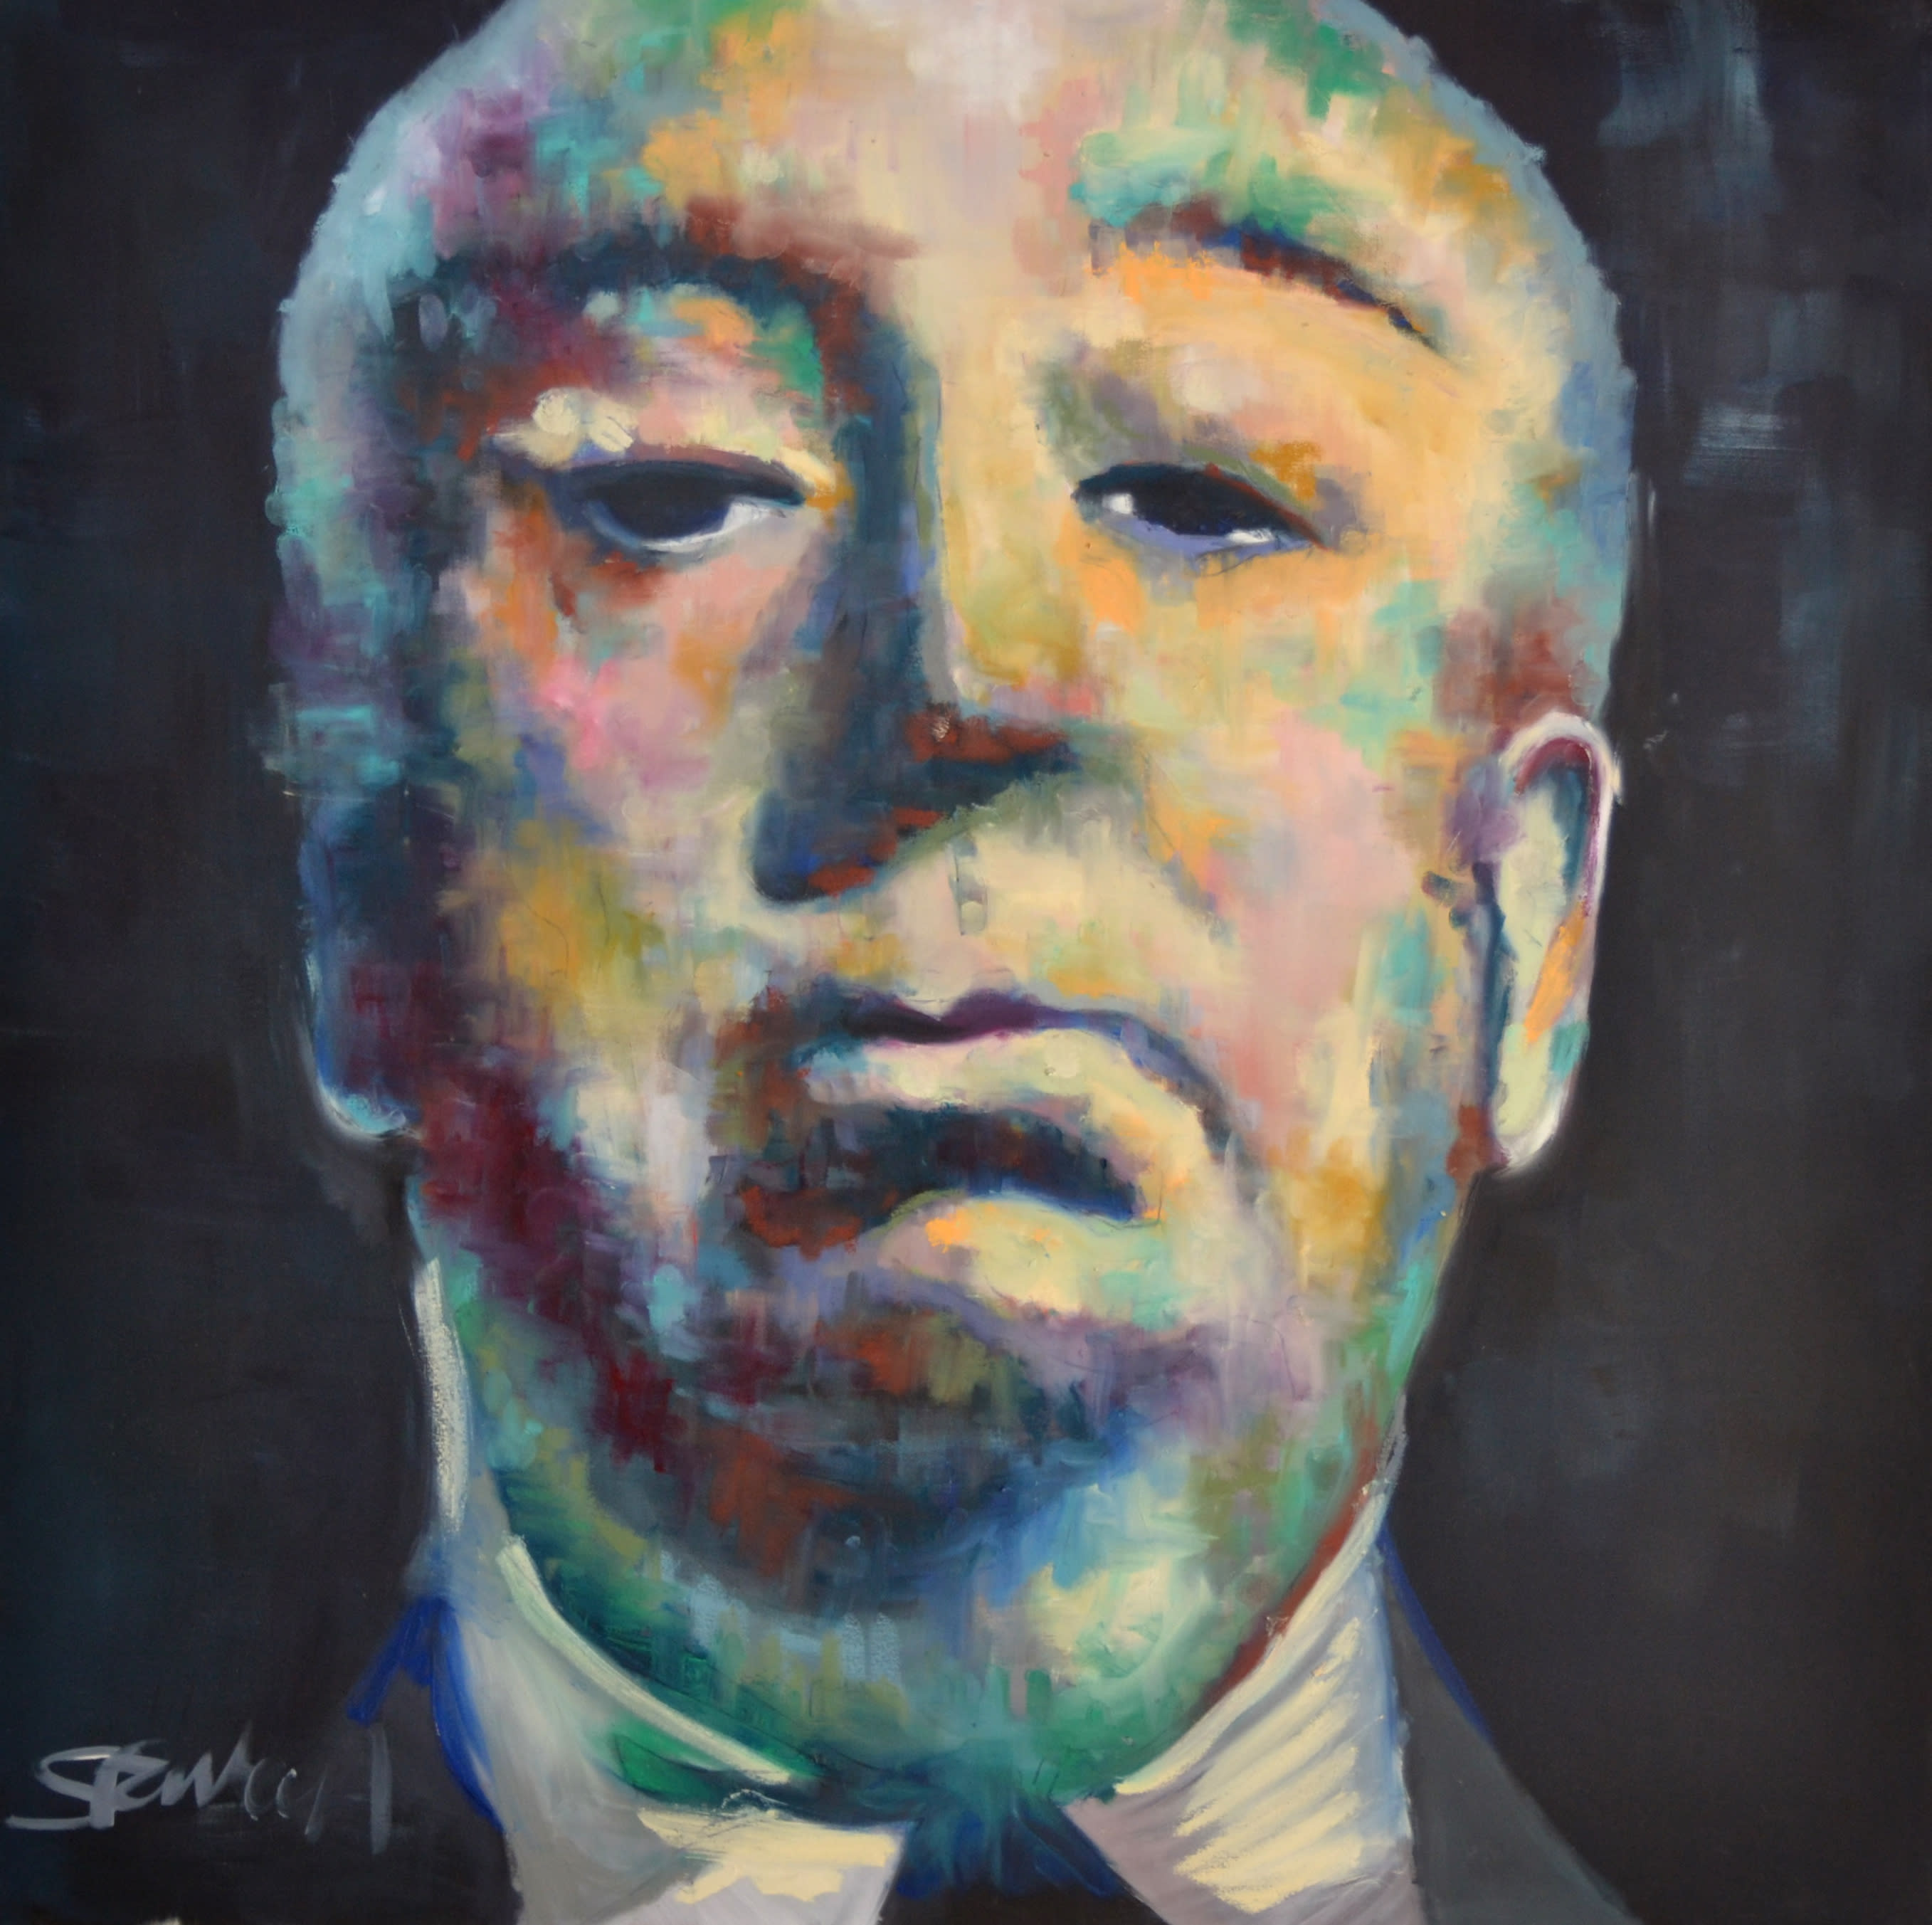 Alfred hitchcock spqbsf